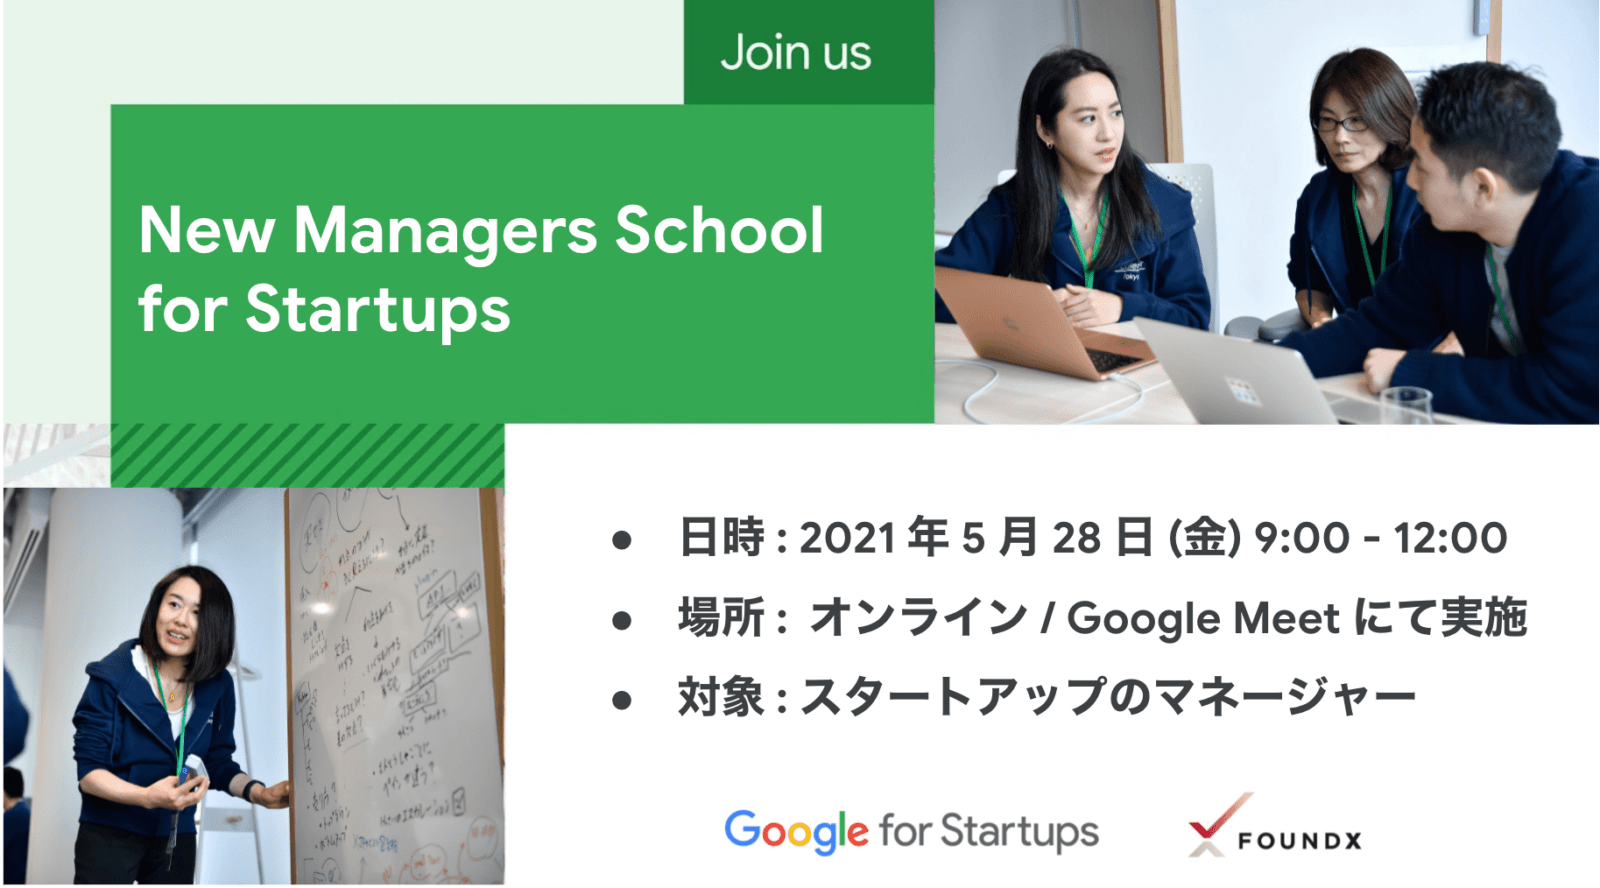 [Google for Startups] New Managers School for Startups